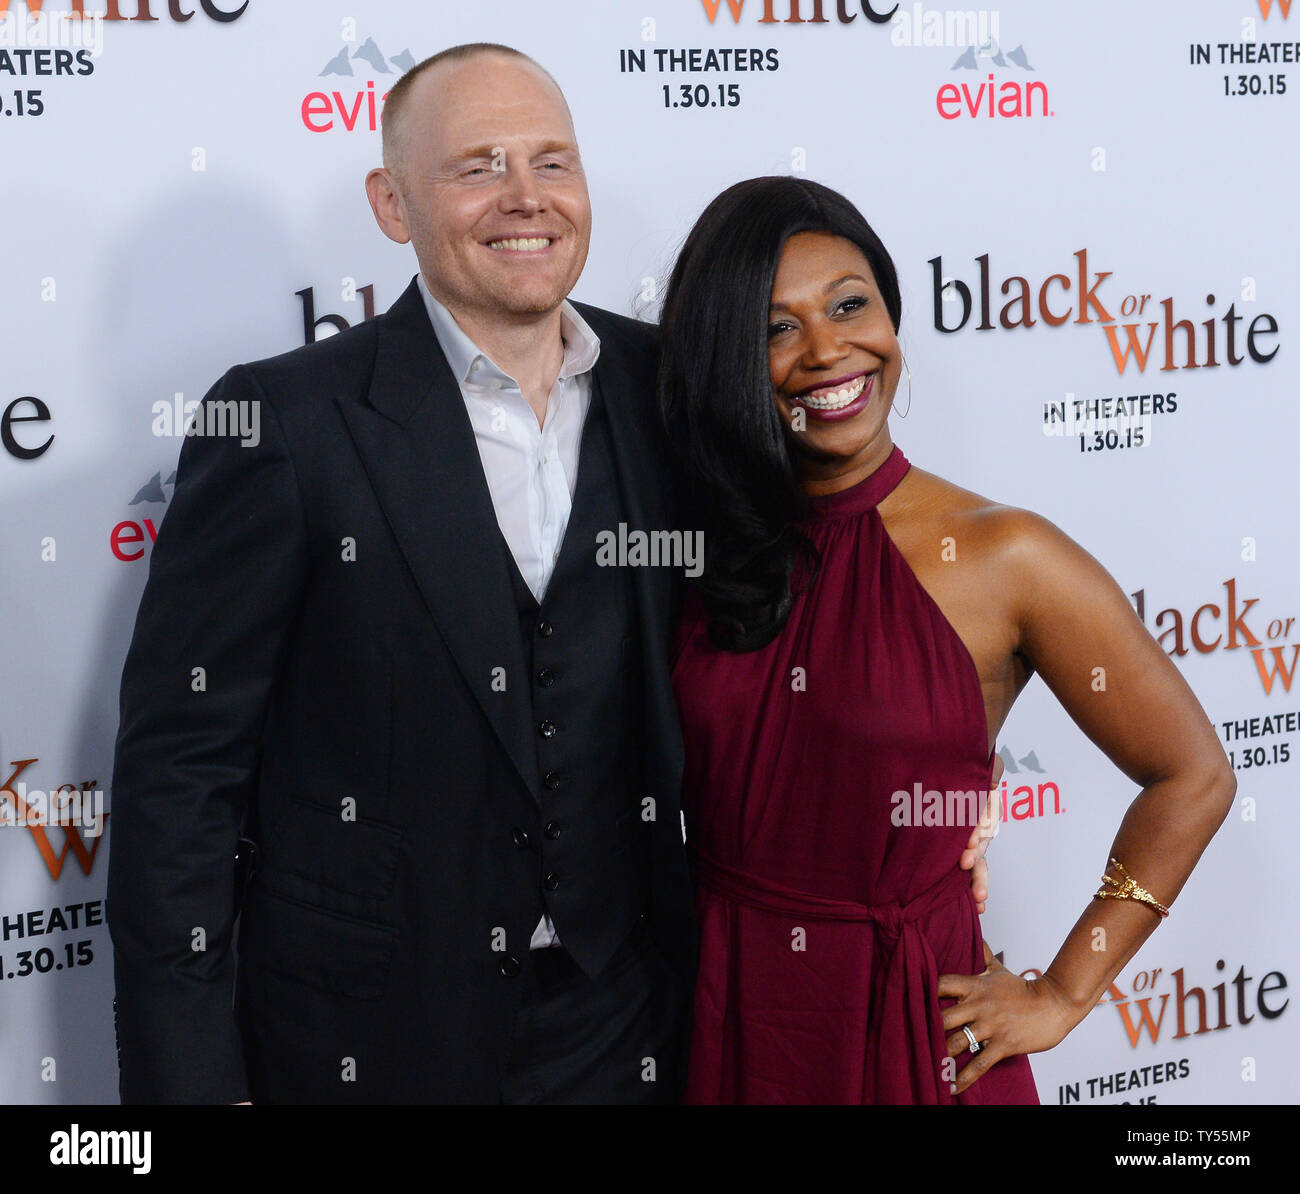 Cast Member Bill Burr And His Wife Nia Renee Hill Attend The Premiere Of The Motion Picture Drama Black Or White At The Regal Theatre In Los Angeles On January 20 2015